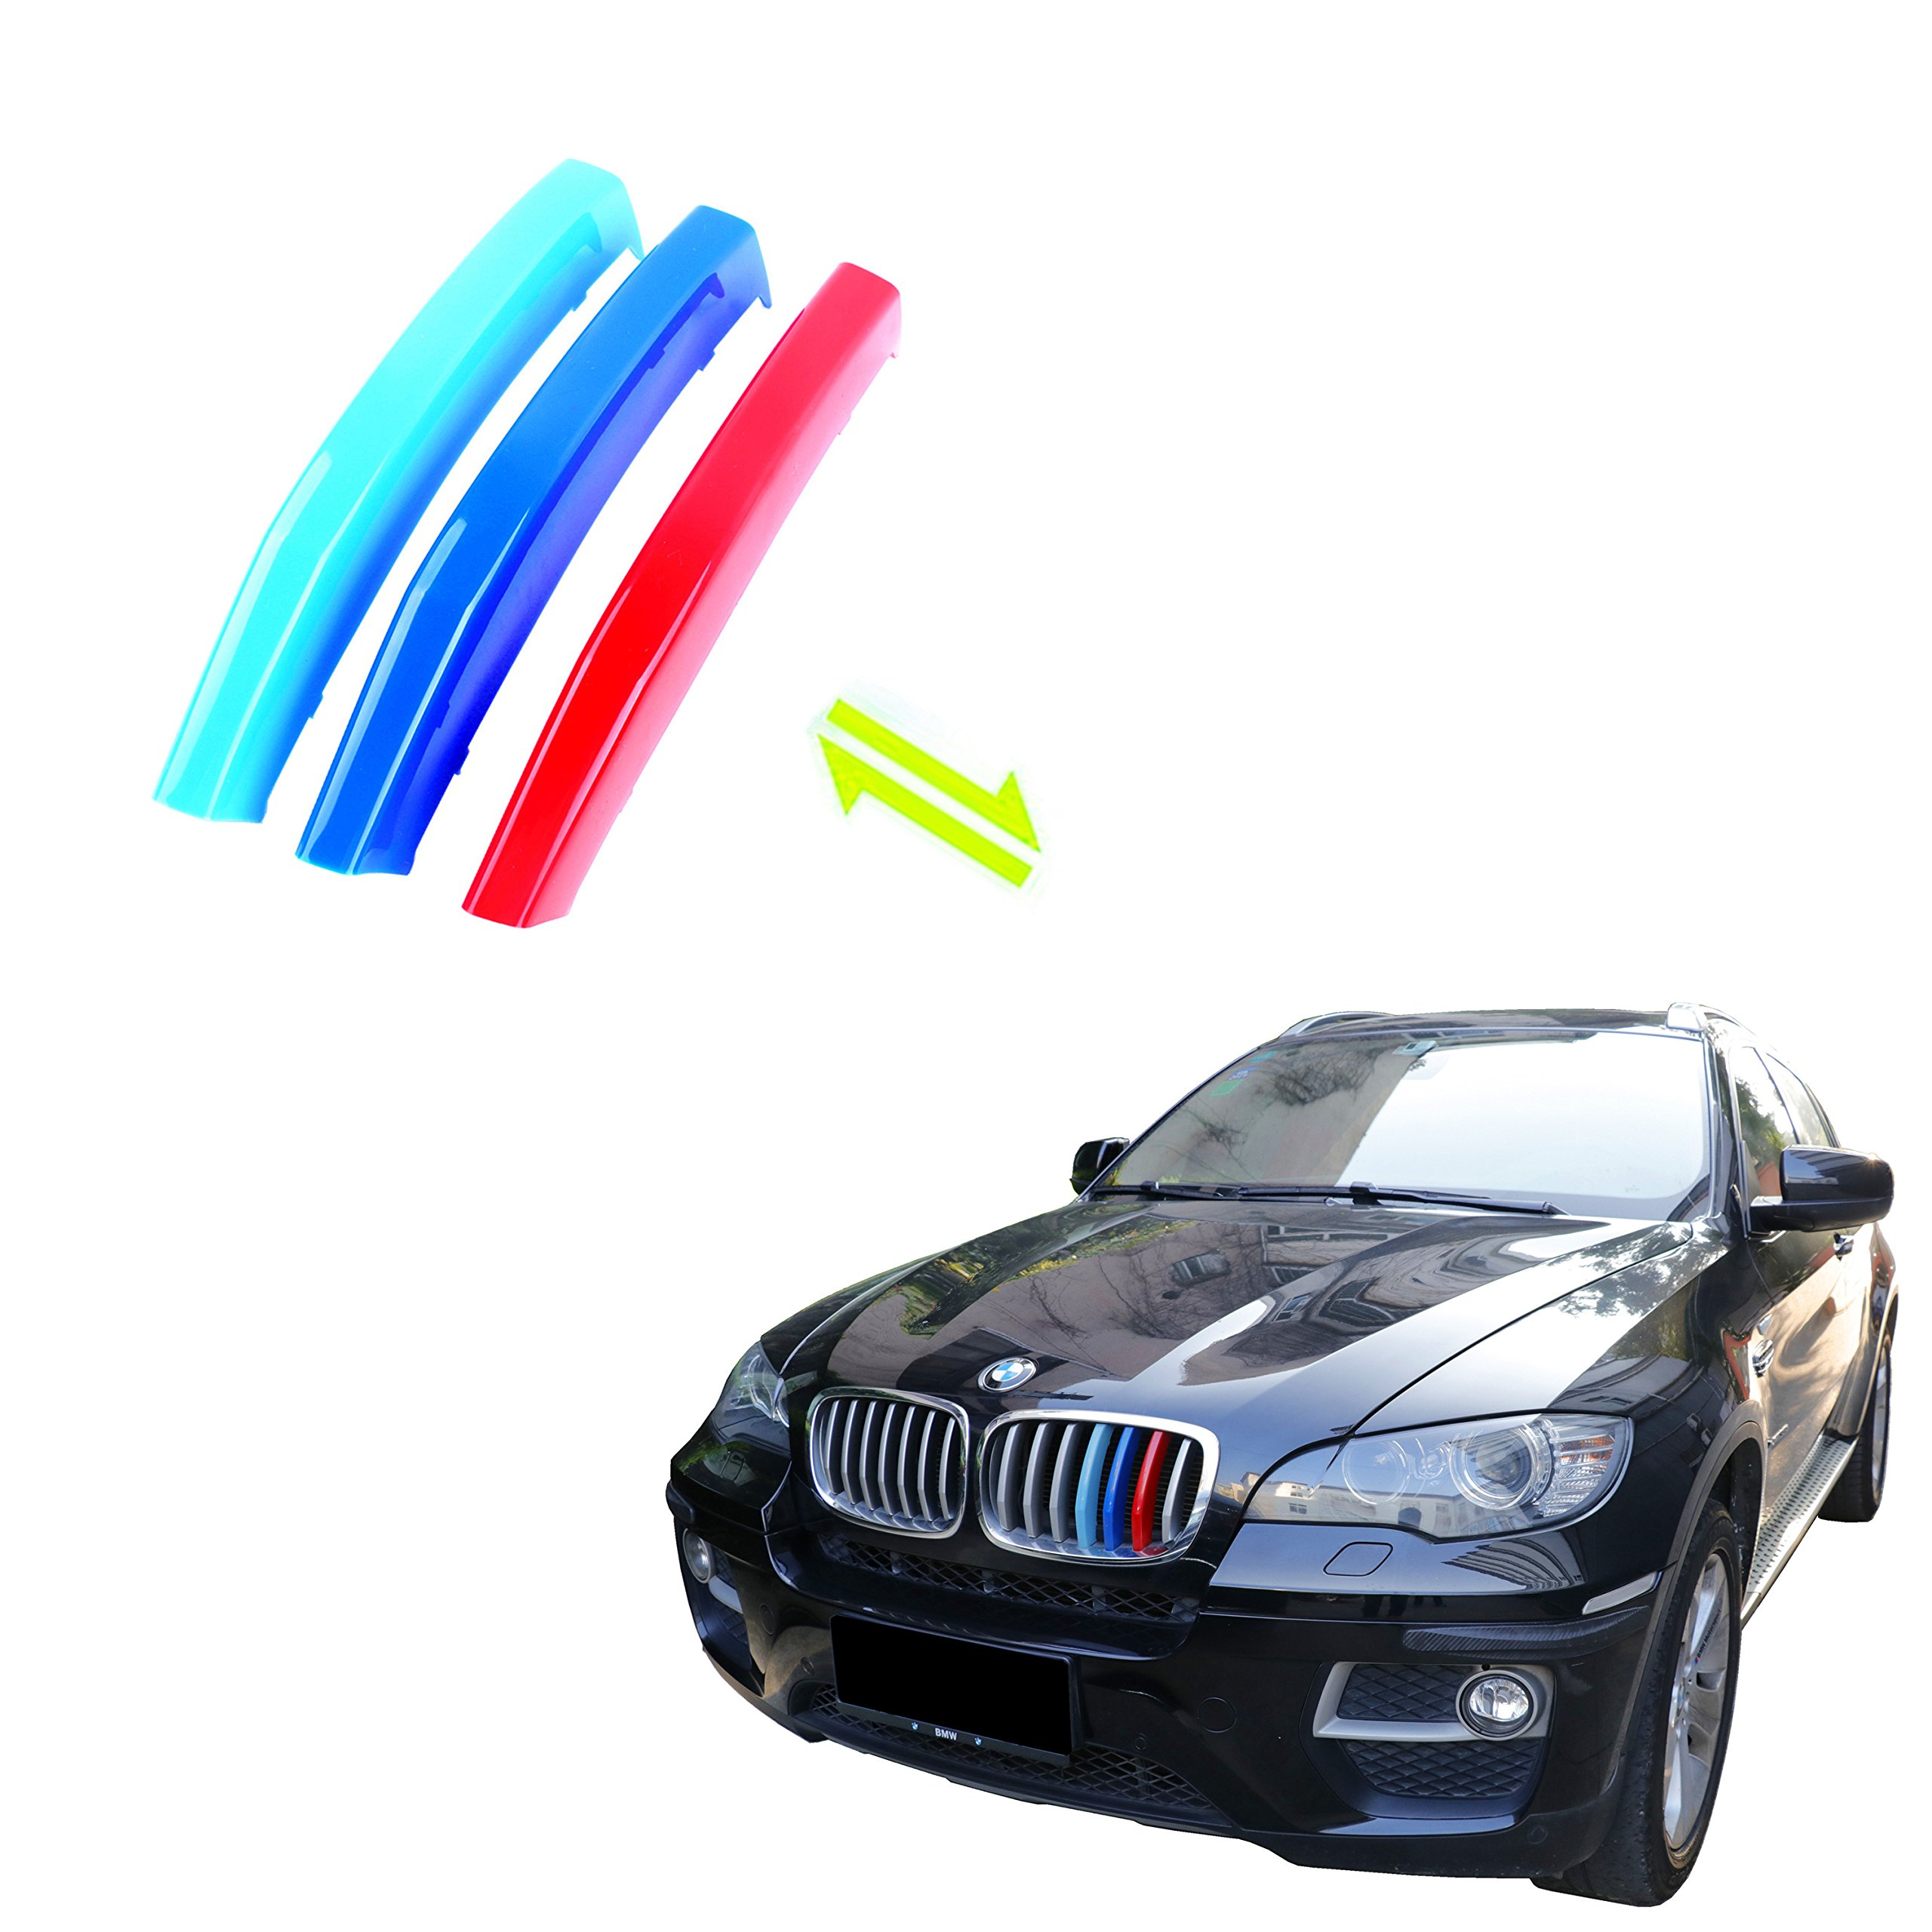 Jackey Awesome Exact Fit ///M-Colored Grille Insert Trims For 2012-2014 BMW E71 X6 Center Kidney Grill